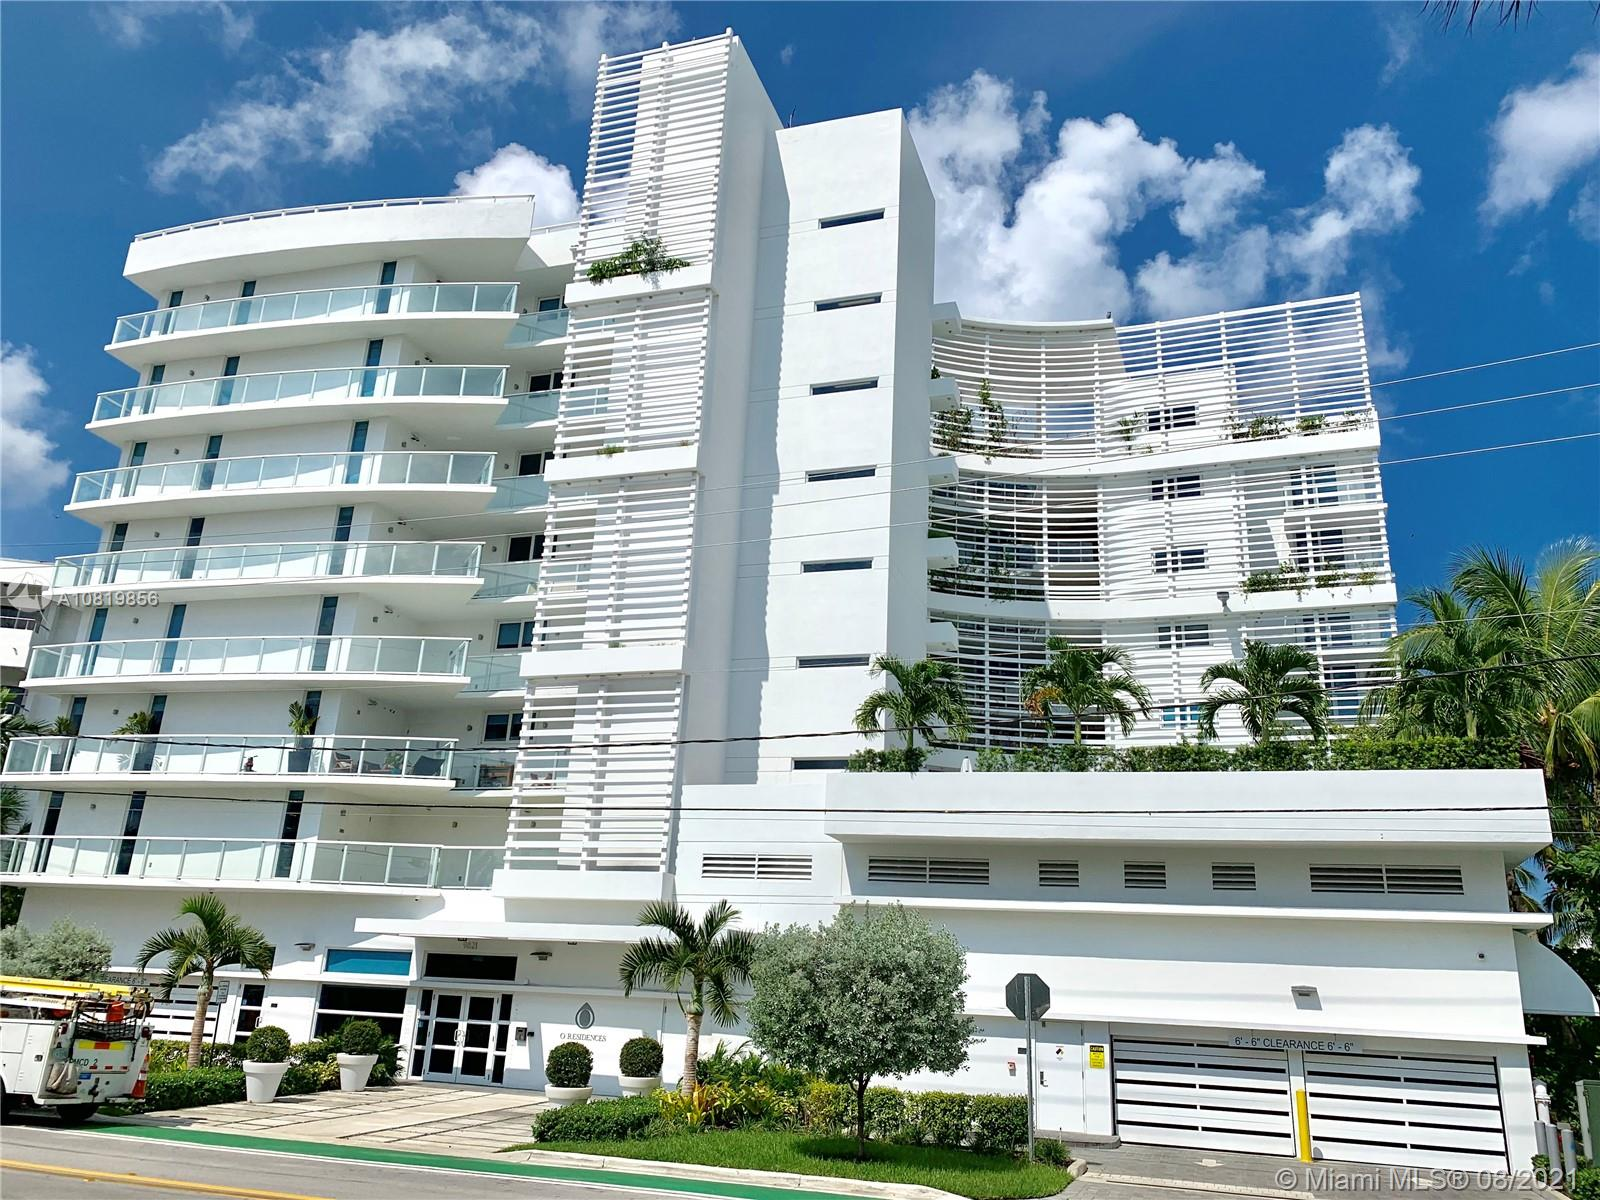 Spectacular apartment with 2 bedrooms and two bathrooms with beautiful and large private terrace. Main room overlooking the Intercostal. Spectacular marine view. Direct access to the canal, Jacuzzi, Pool, Gym and barbecue area.